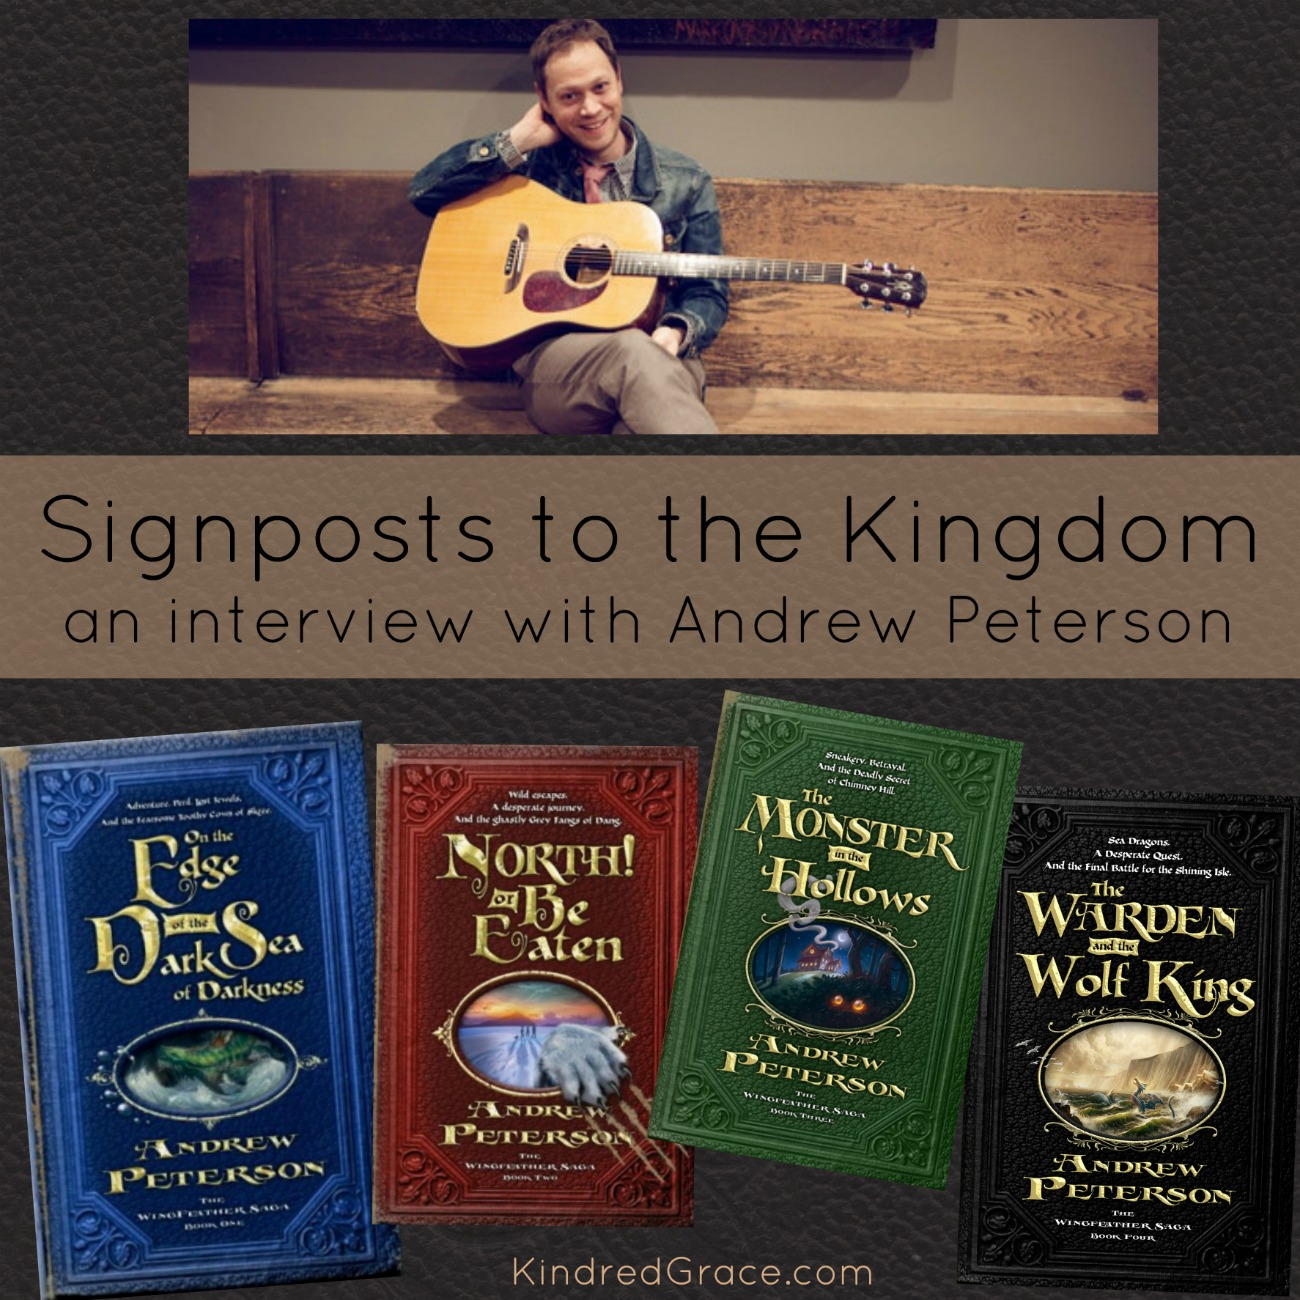 Signposts to the Kingdom: an interview with Andrew Peterson